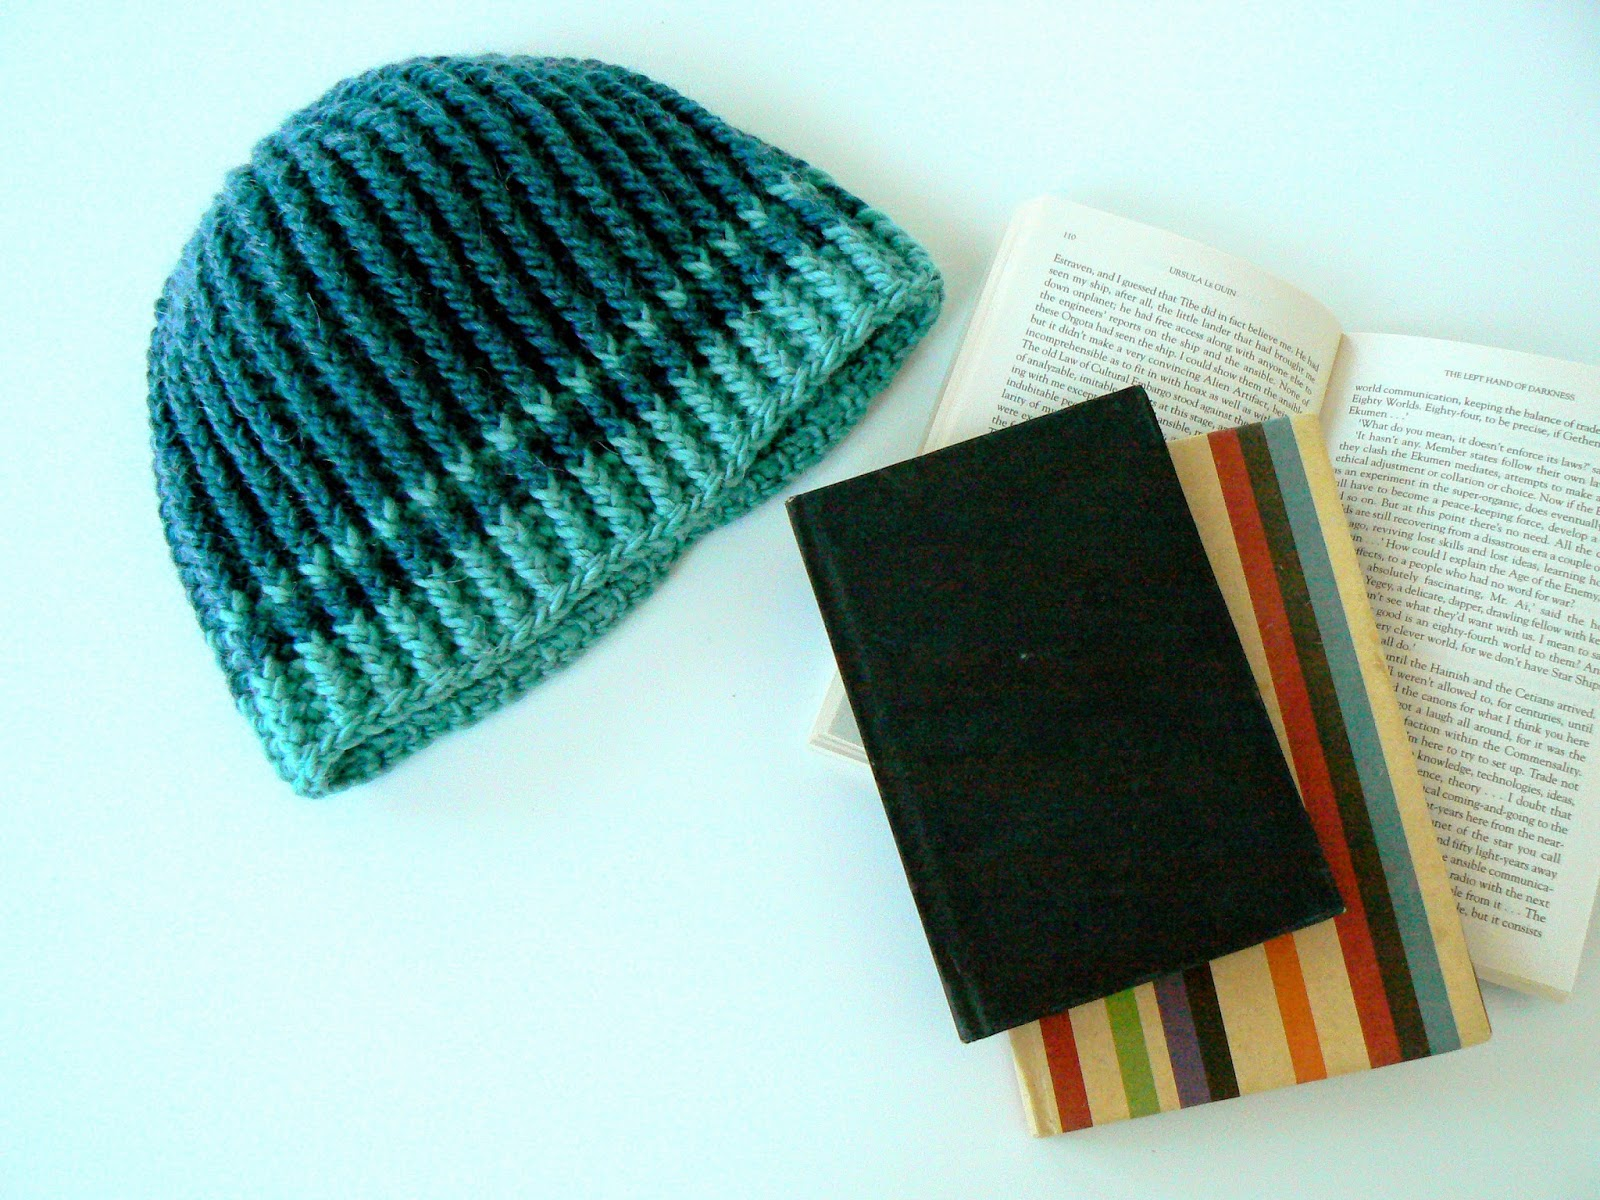 Little Crochet: Christmas Gifts - Cabled Crochet Hat